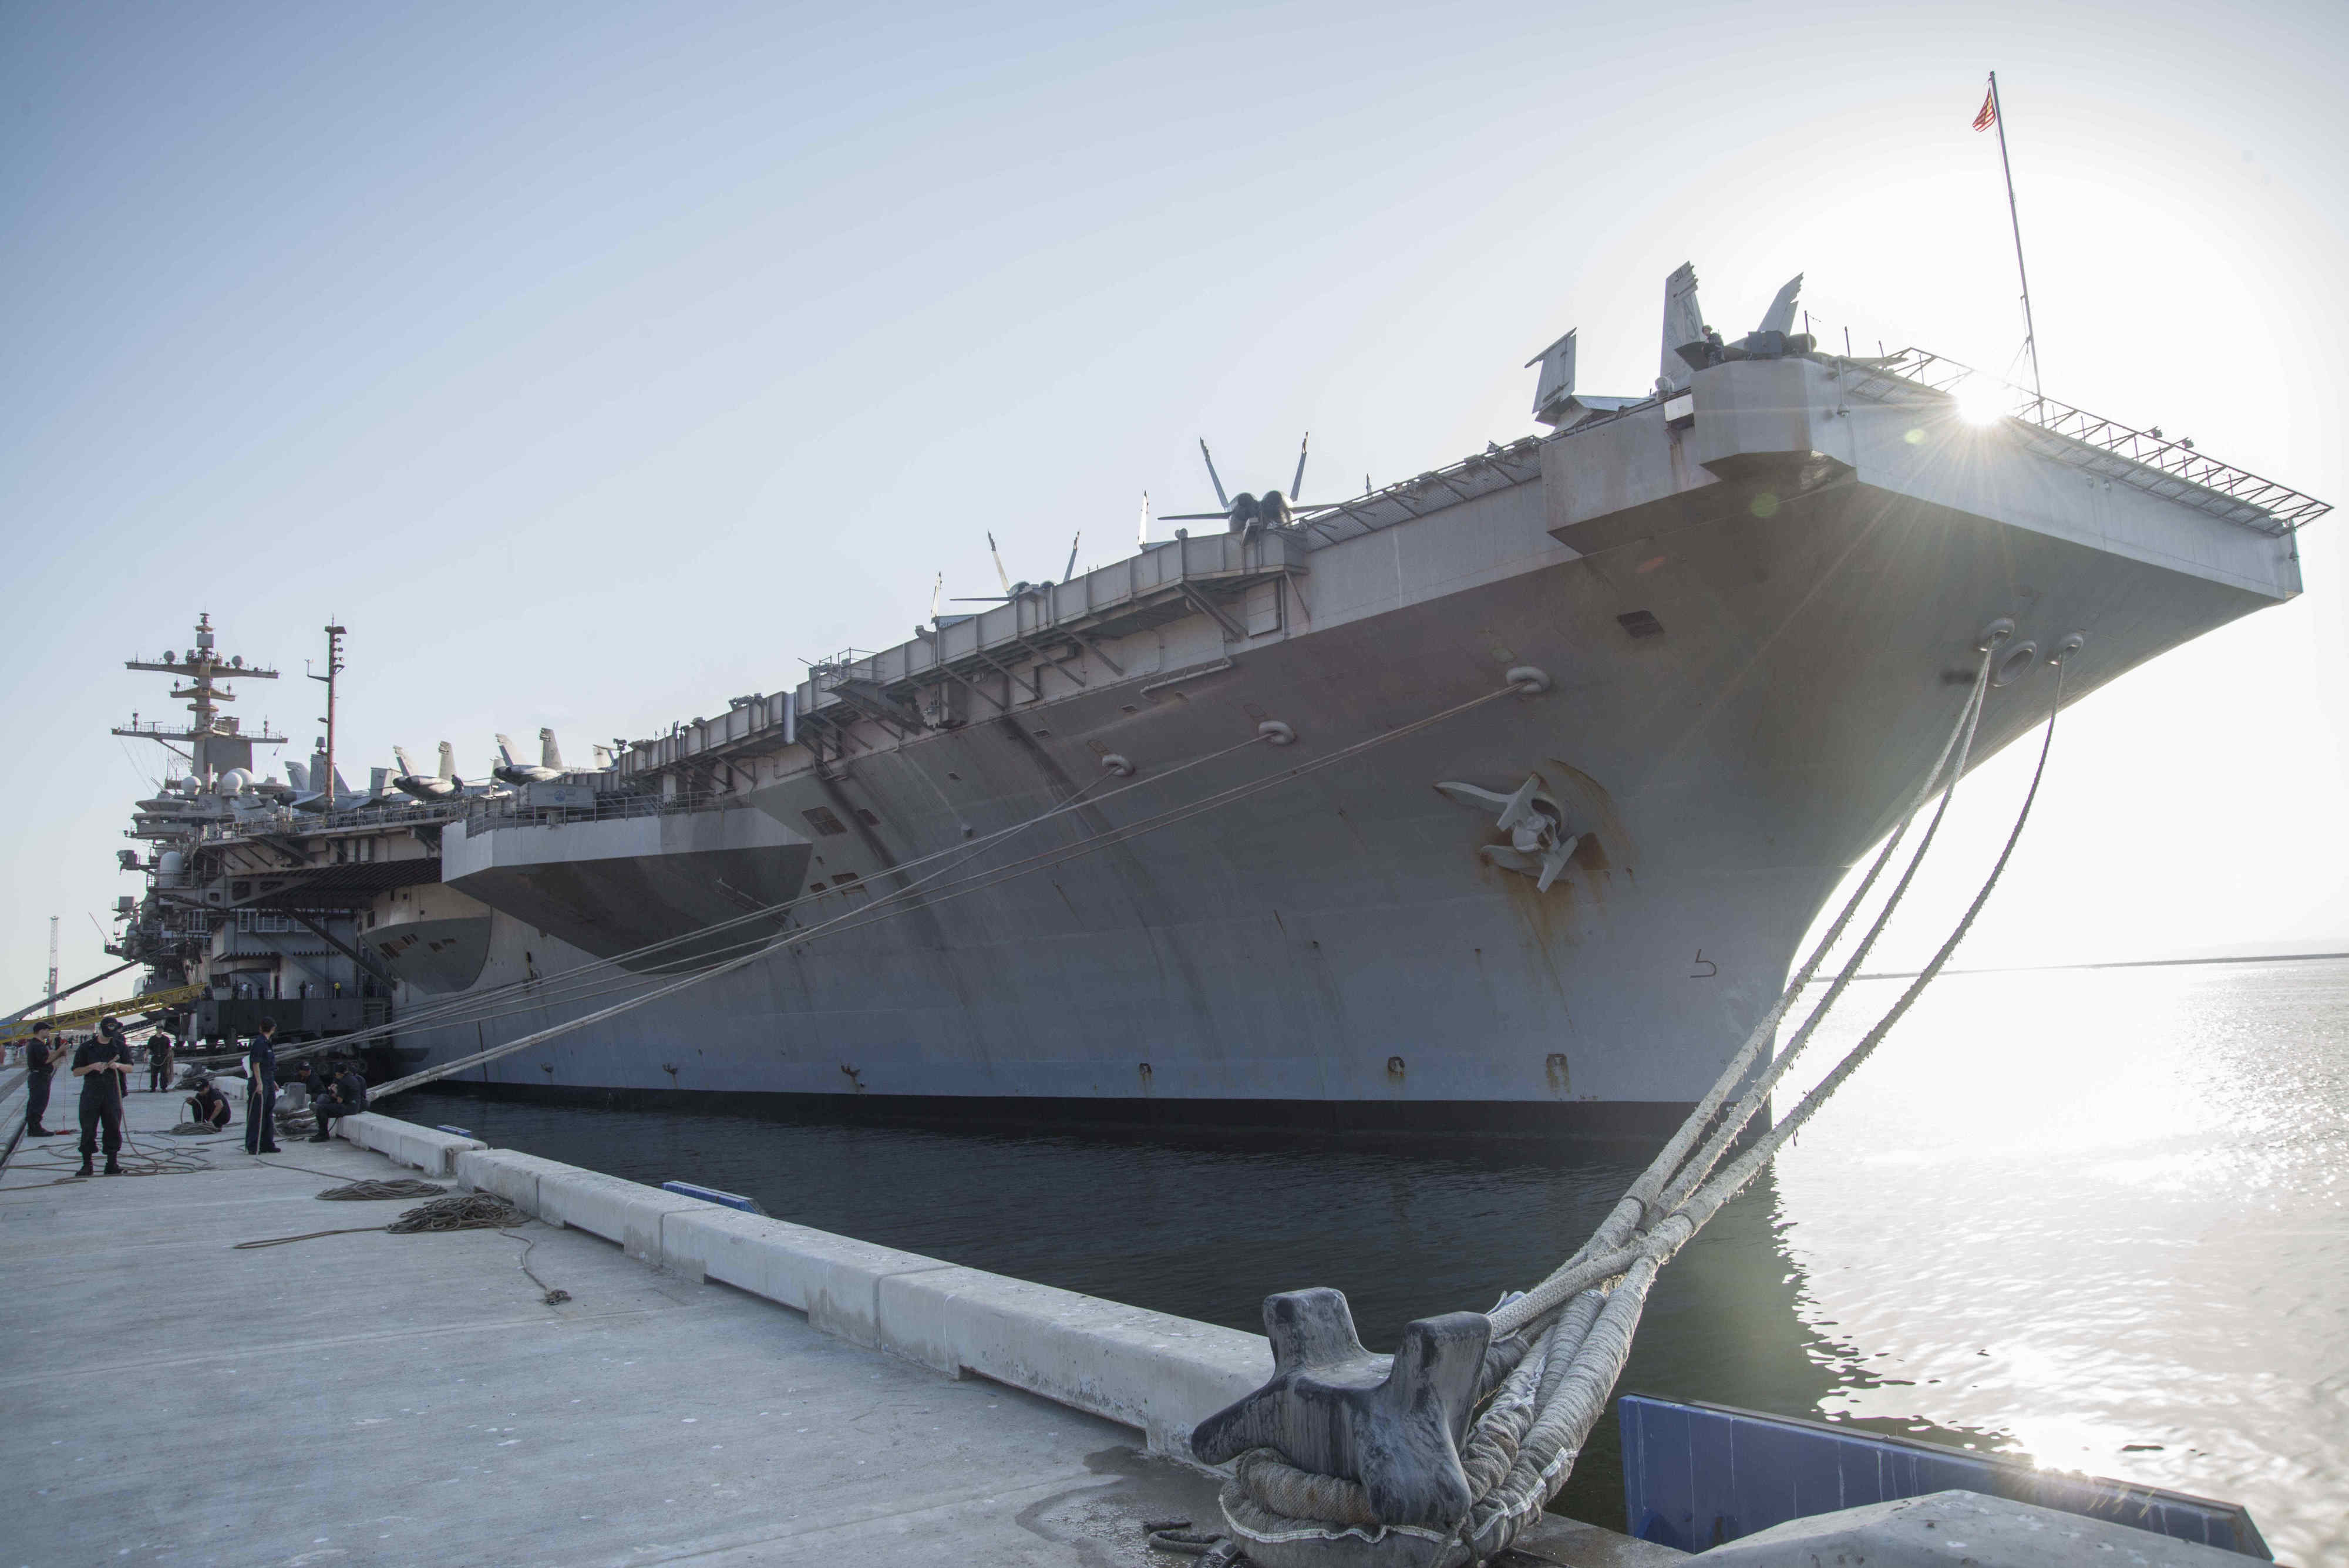 The aircraft carrier USS George H.W. Bush docks in the port of Duqm, Oman, October 21, 2014. (U.S. Navy photo by Mass Communication Specialist 3rd Class Preston Paglinawan/ Released)